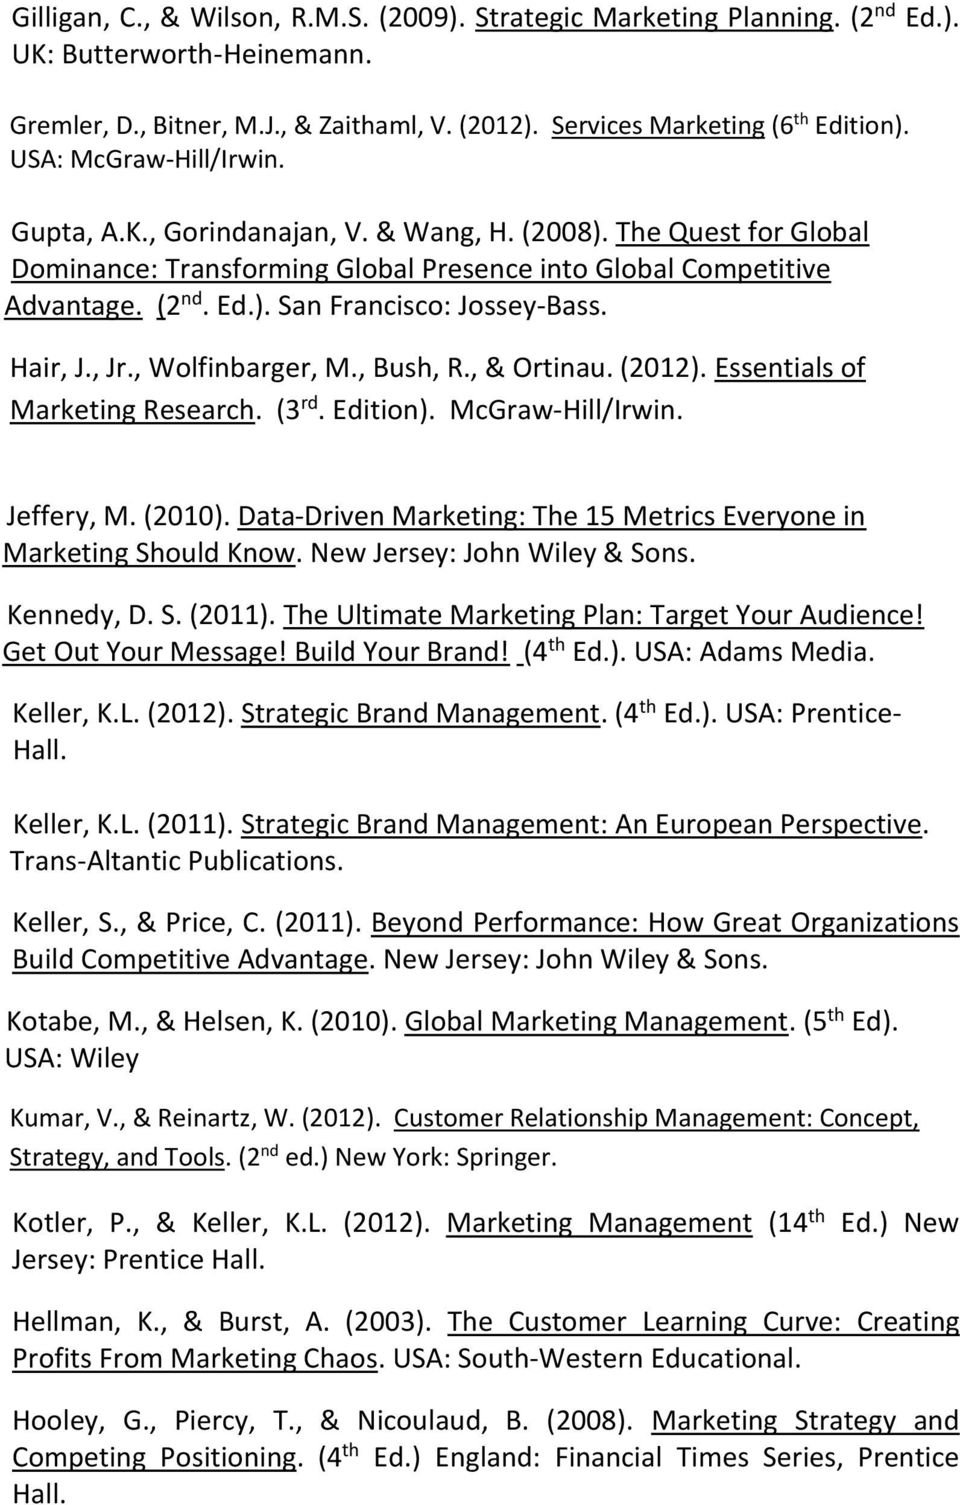 Hair, J., Jr., Wolfinbarger, M., Bush, R., & Ortinau. (2012). Essentials of Marketing Research. (3 rd. Edition). McGraw-Hill/Irwin. Jeffery, M. (2010).